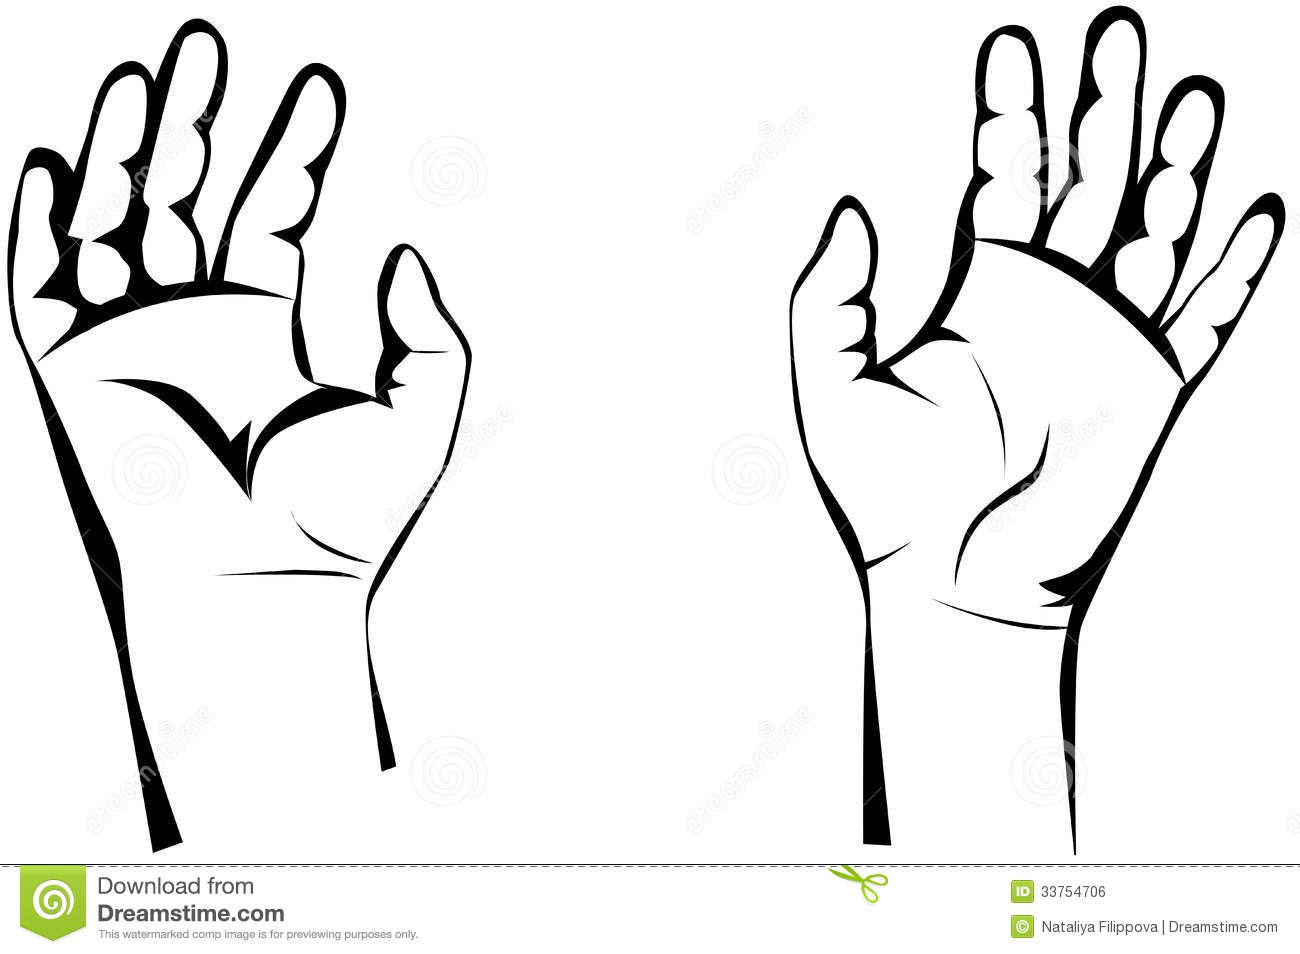 Hands are still black and white clipart banner royalty free download 84+ Hands Clipart Black And White | ClipartLook banner royalty free download